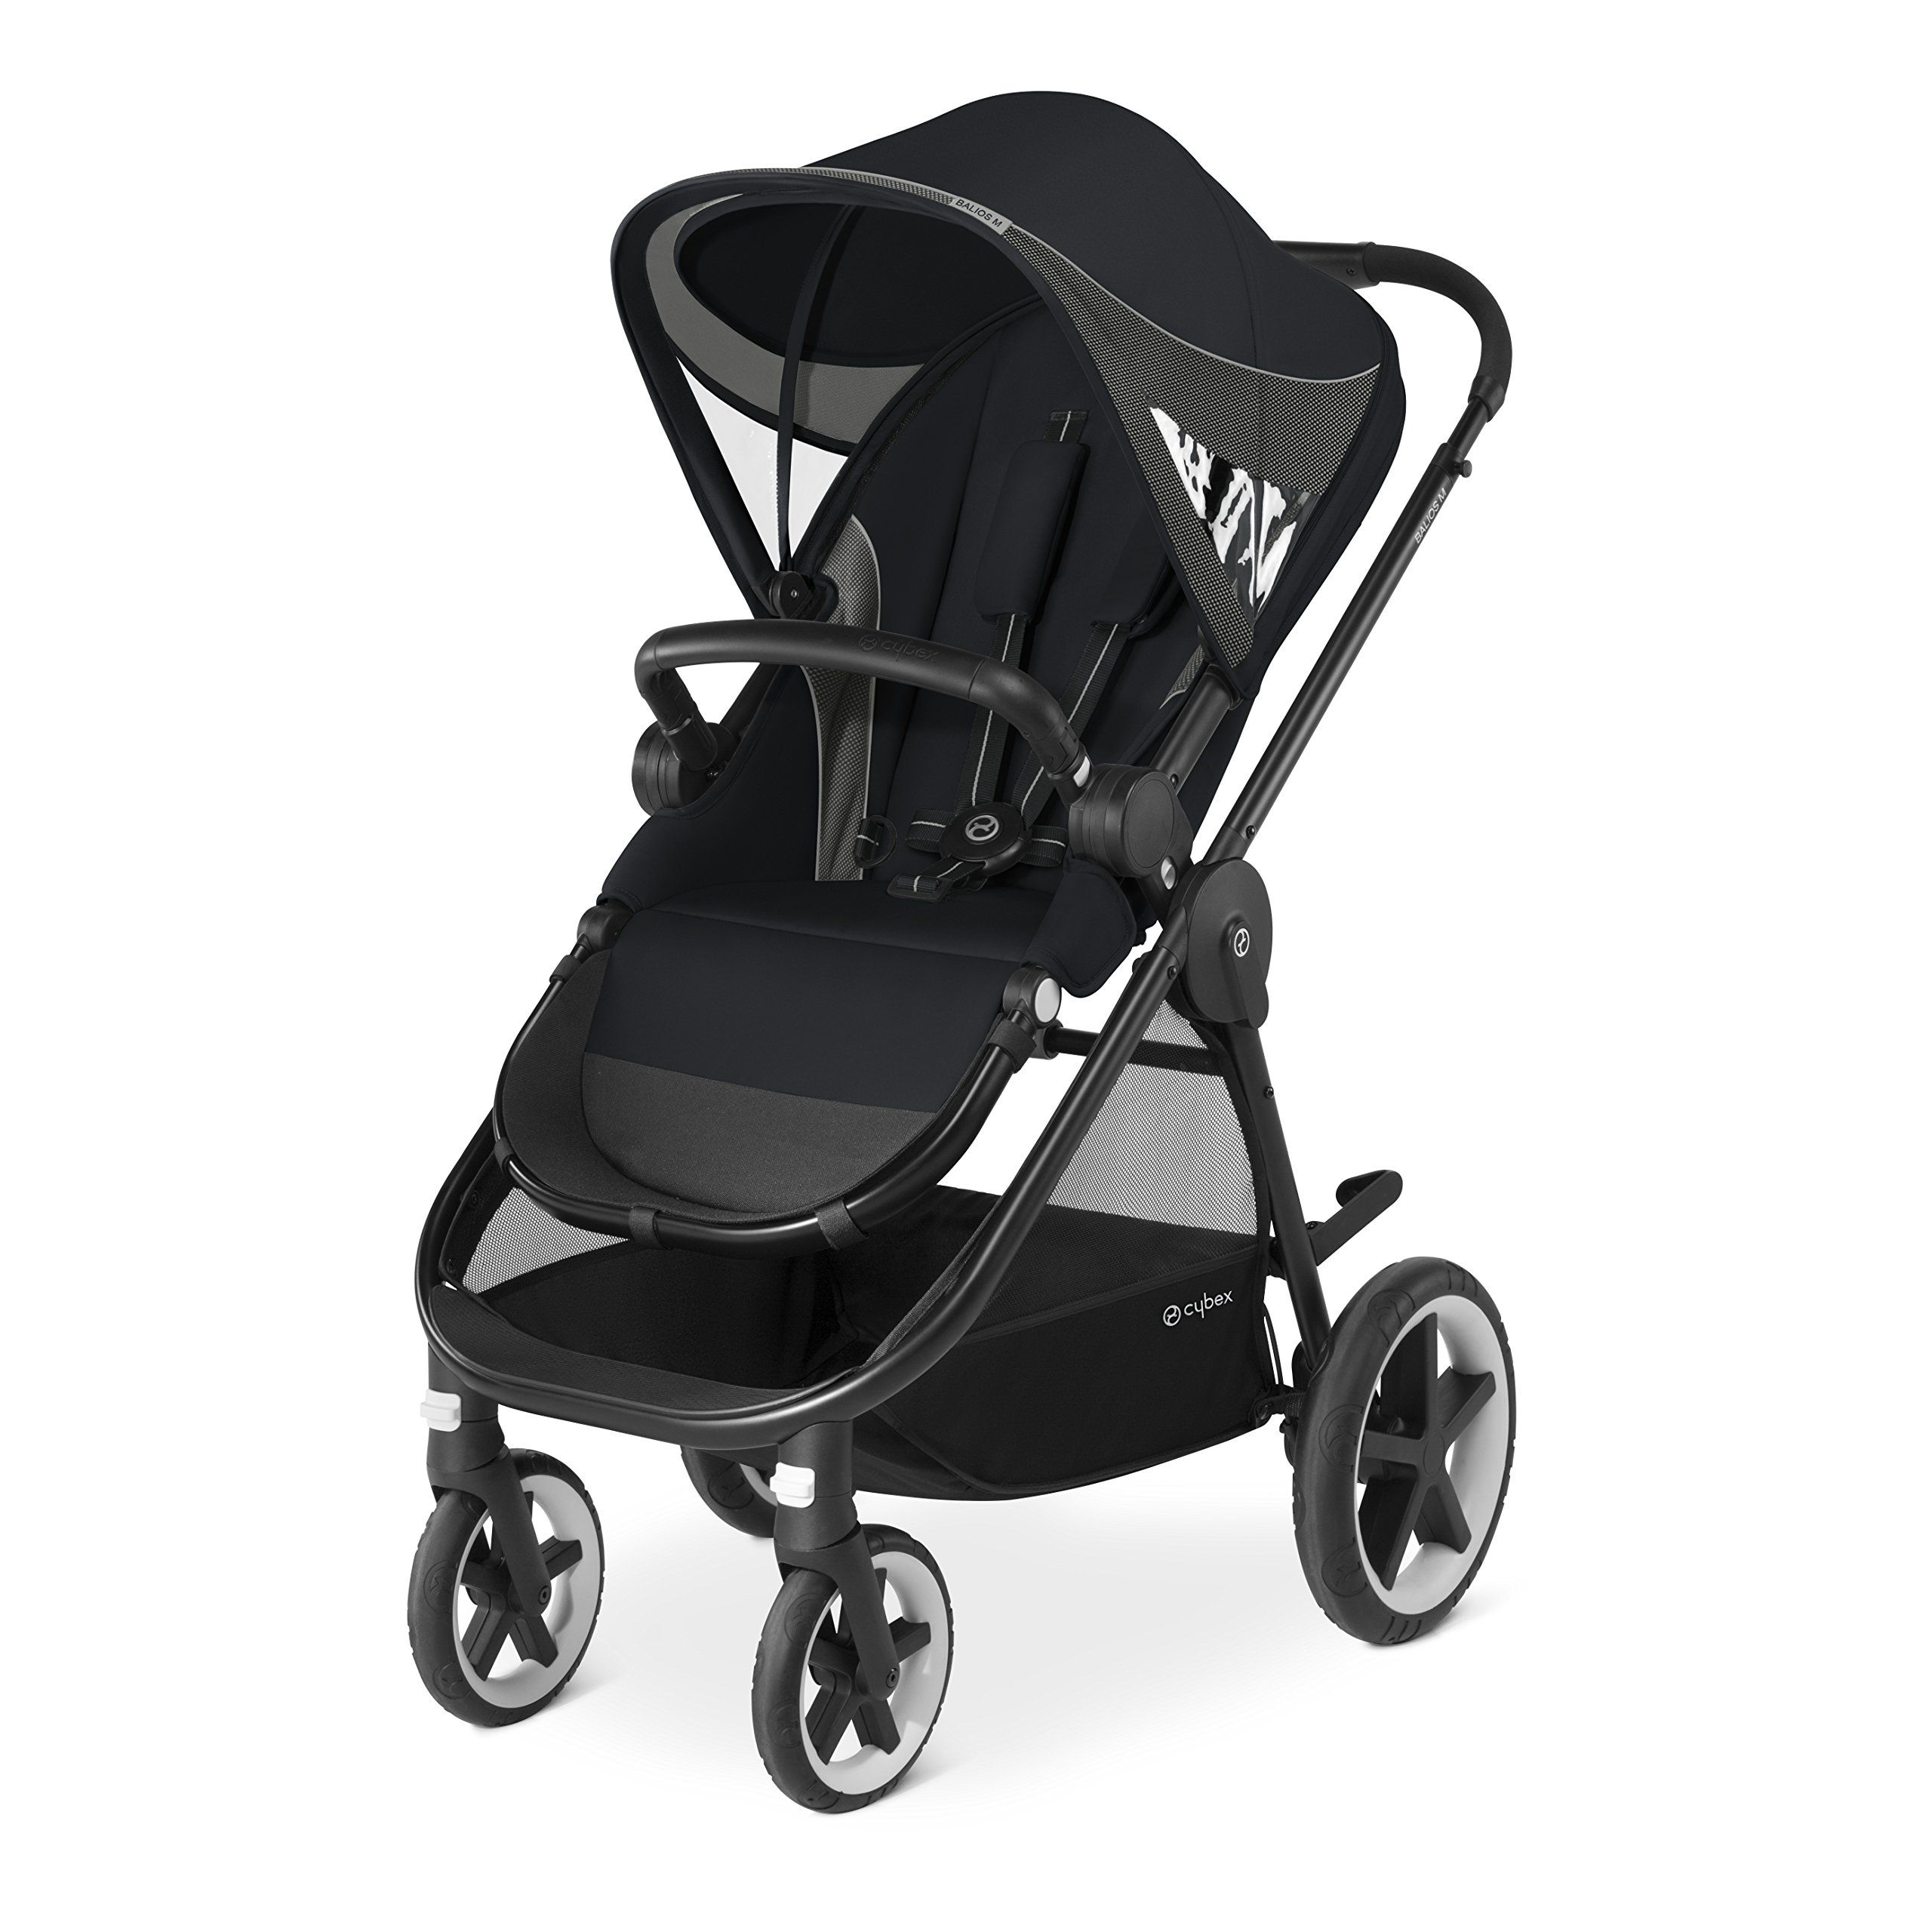 Shop (With images) Baby strollers, Stroller